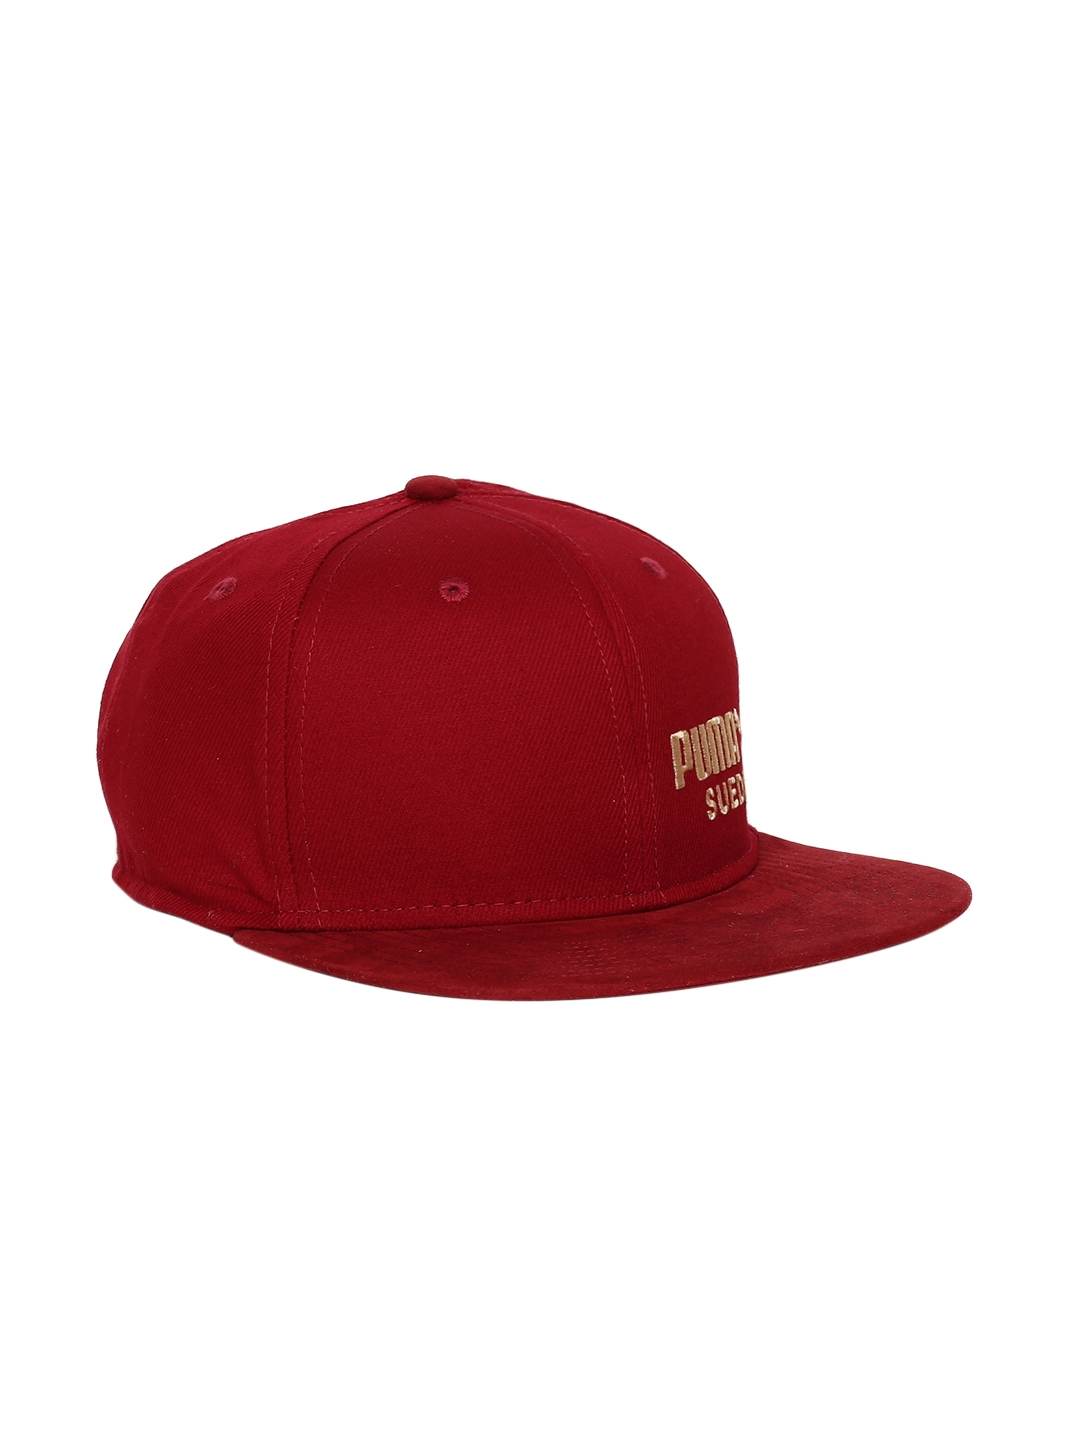 b36eaefc0c9 Buy Puma Unisex Red Solid ARCHIVE Suede Baseball Cap - Caps for ...